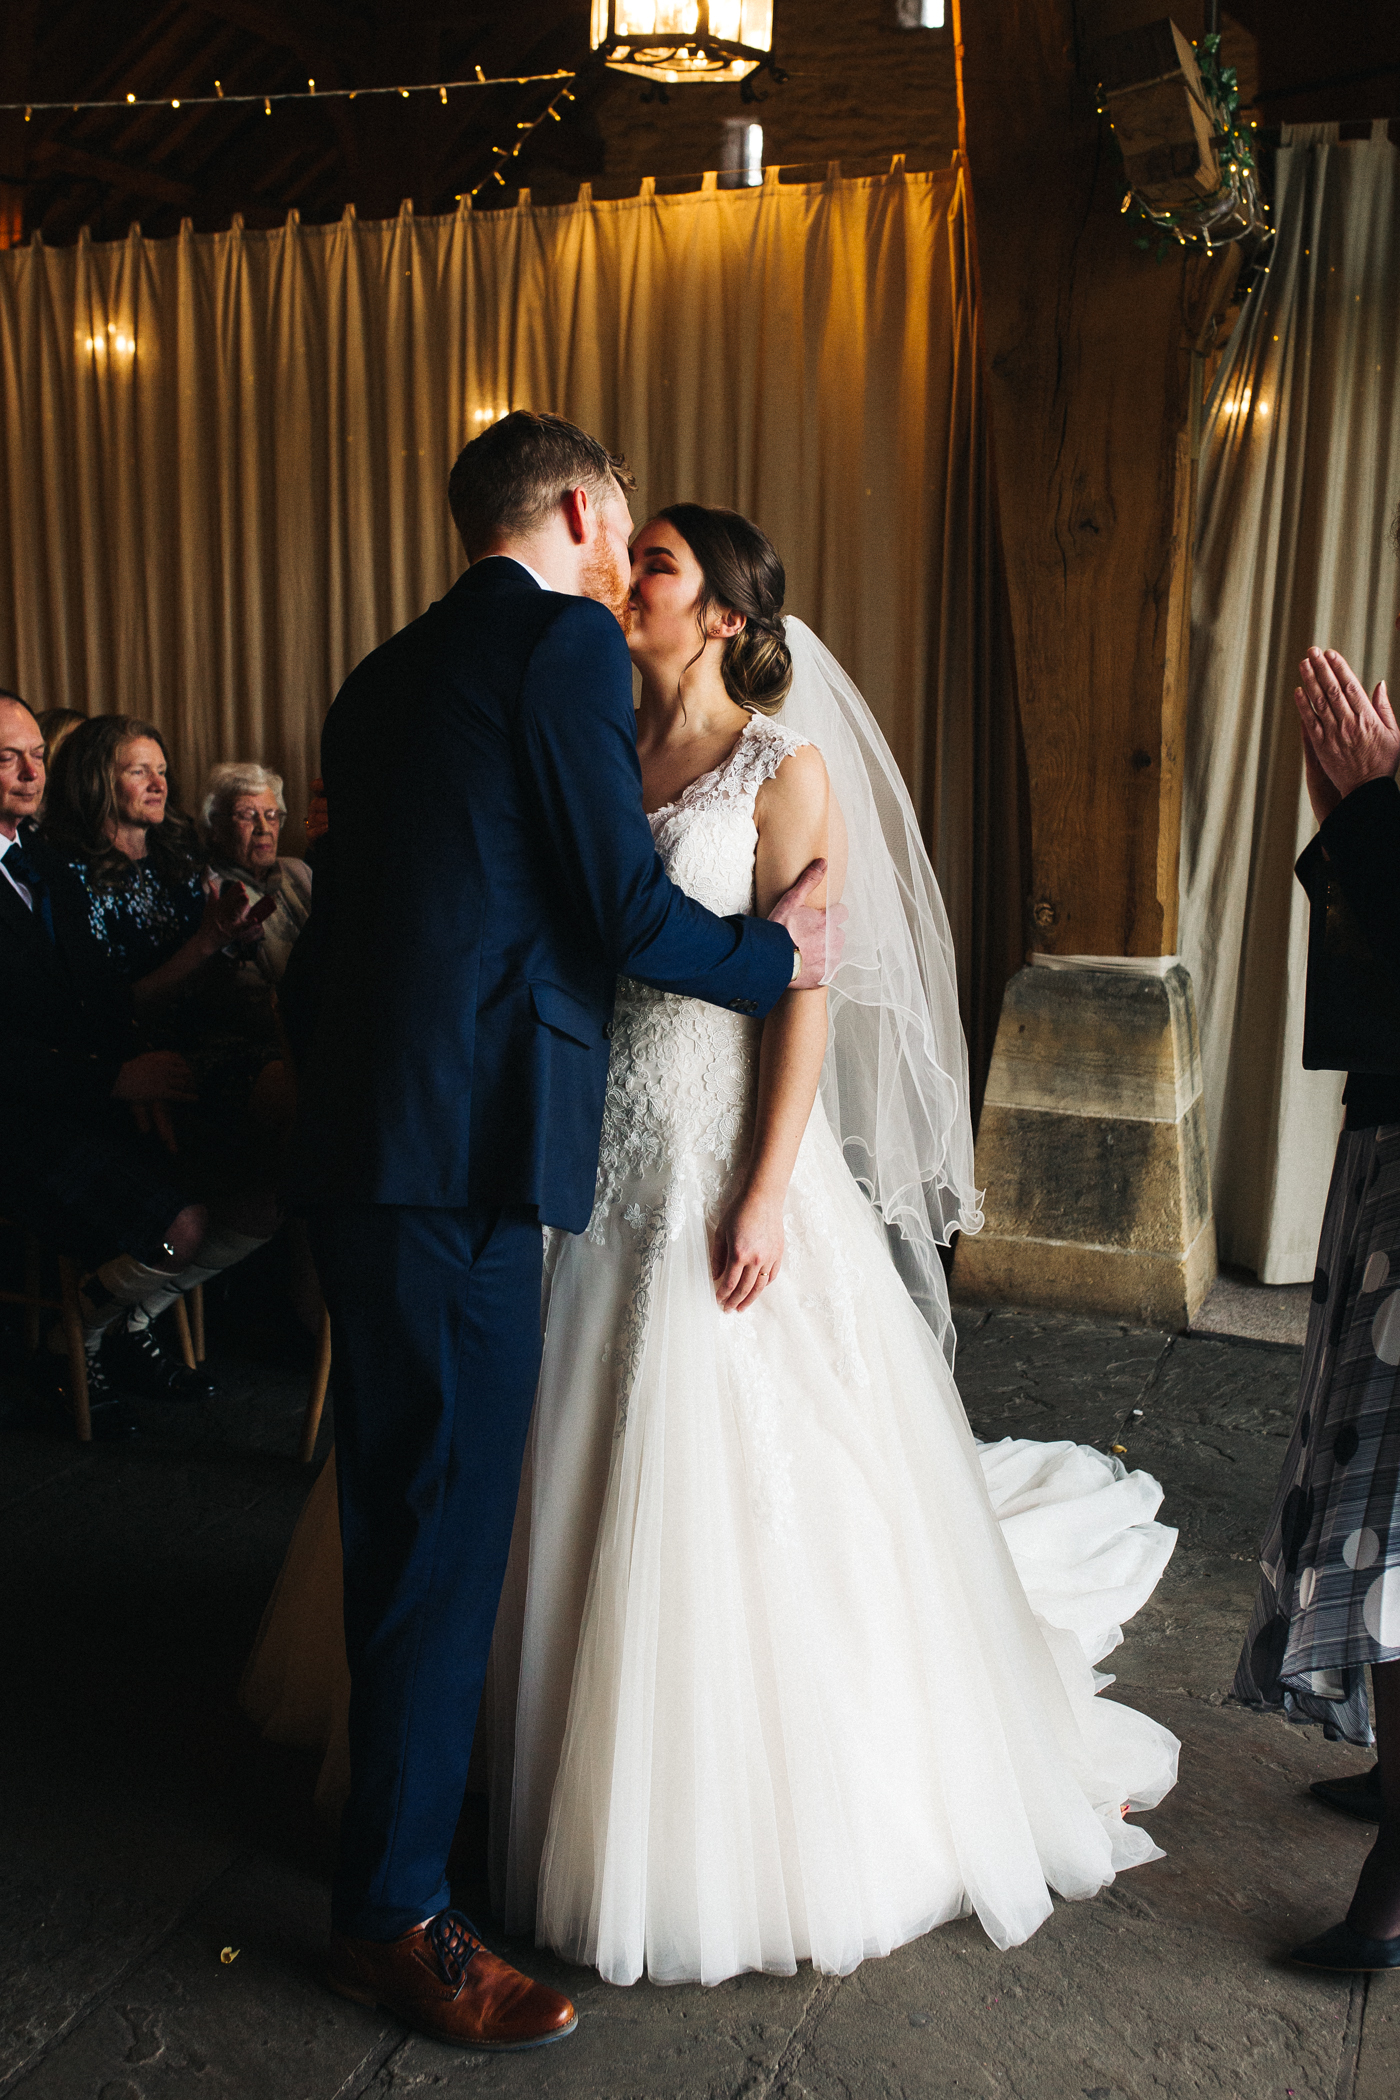 the bride and groom kiss during the ceremony. spring barn wedding at east riddlesden hall keighley west yorkshire wedding photographer